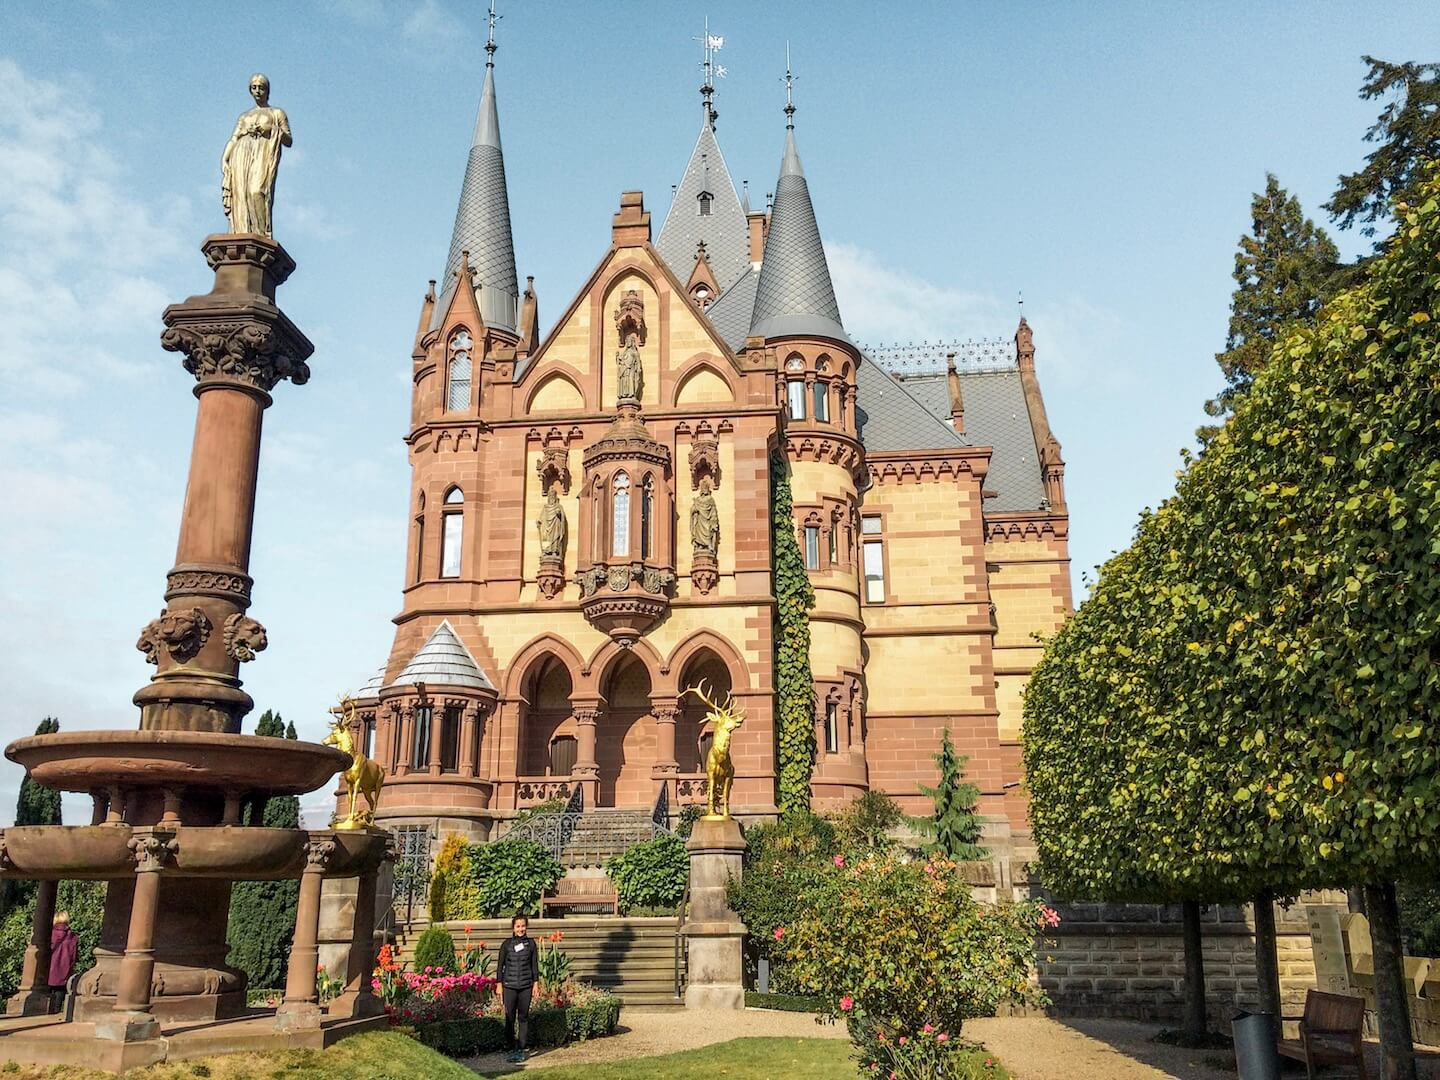 Schloss Drachenburg, Cologne Best Day Trips, Germany | Moon & Honey Travel